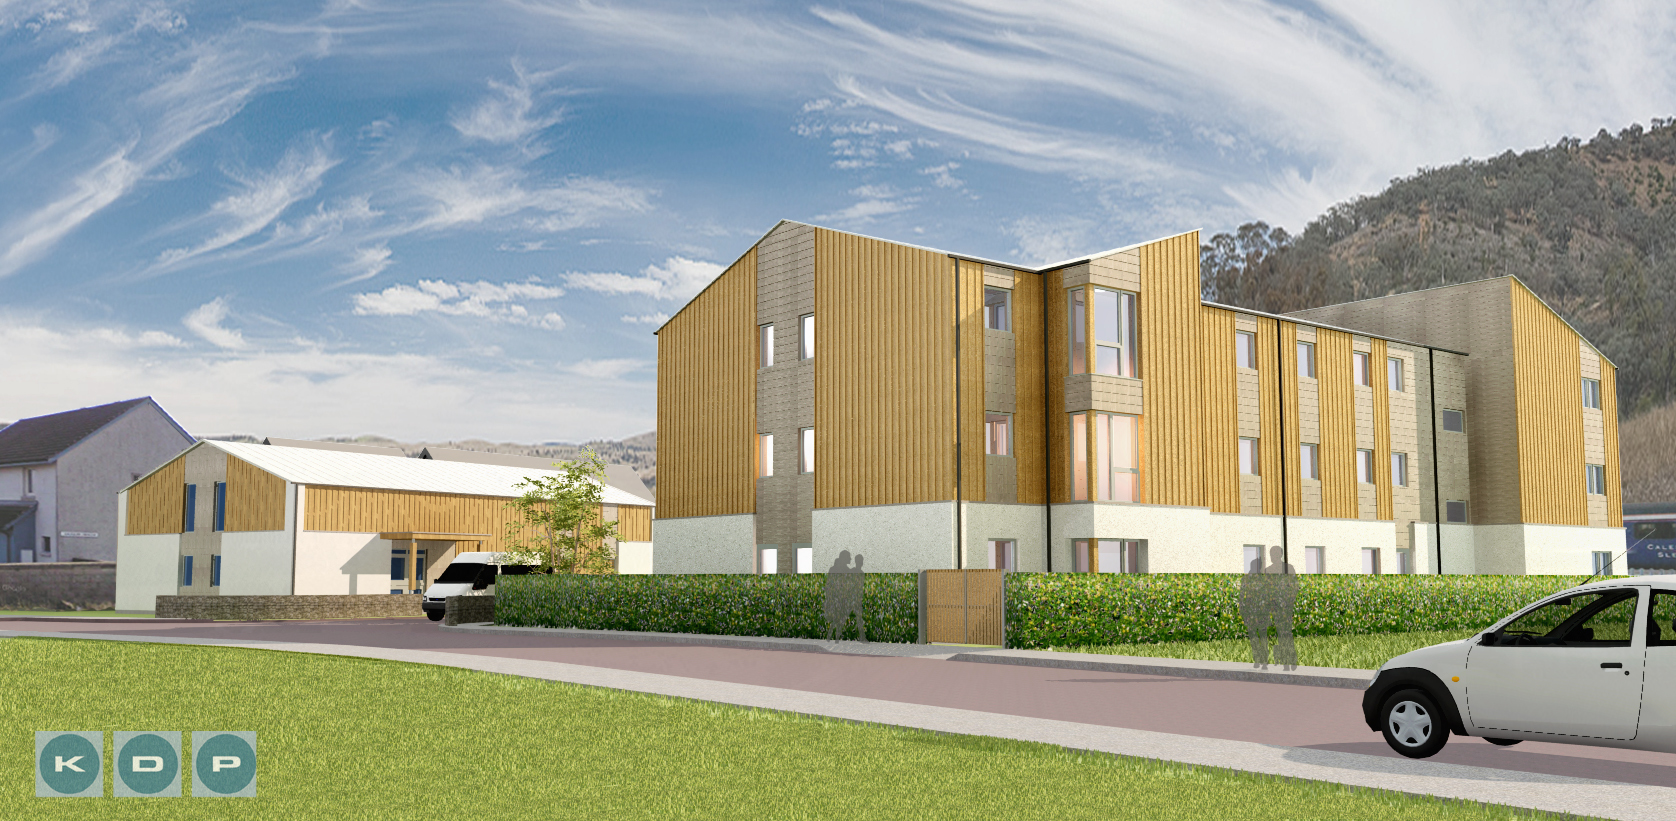 An artists impression of the student flats in Fort William